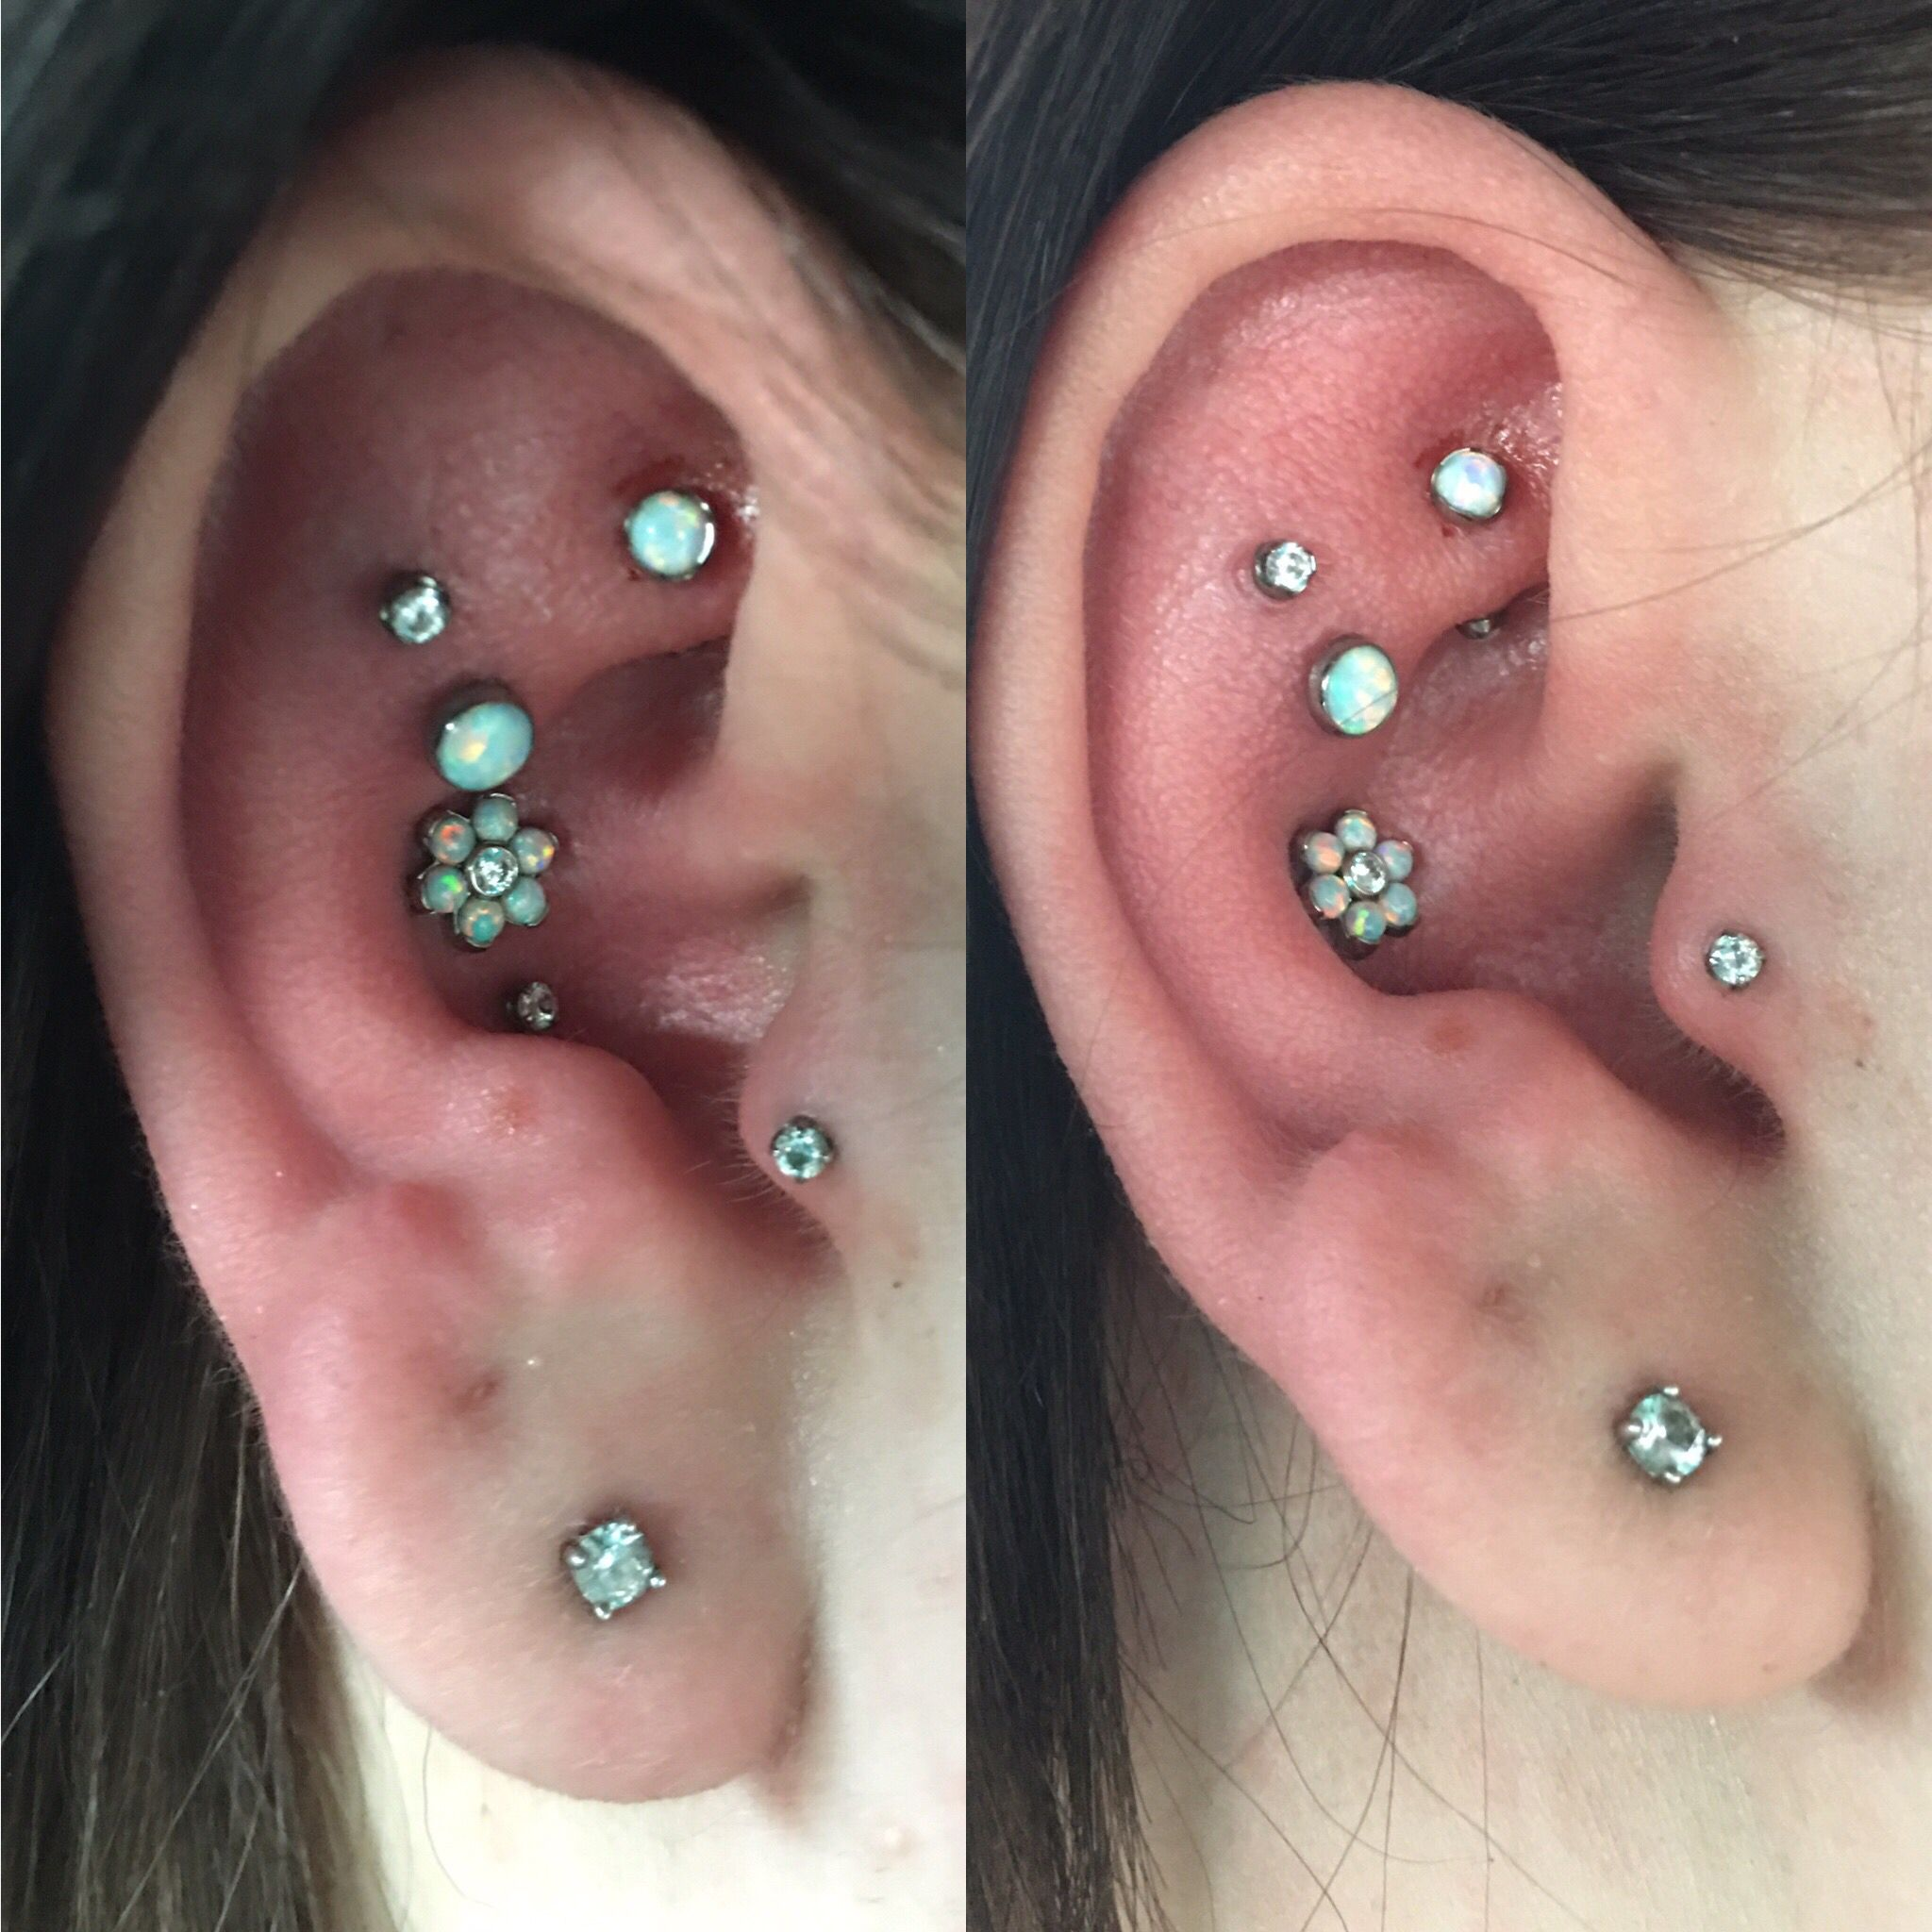 #doubleconchpeircing #conchpeircing #conch #rookpeircing #traguspeircing